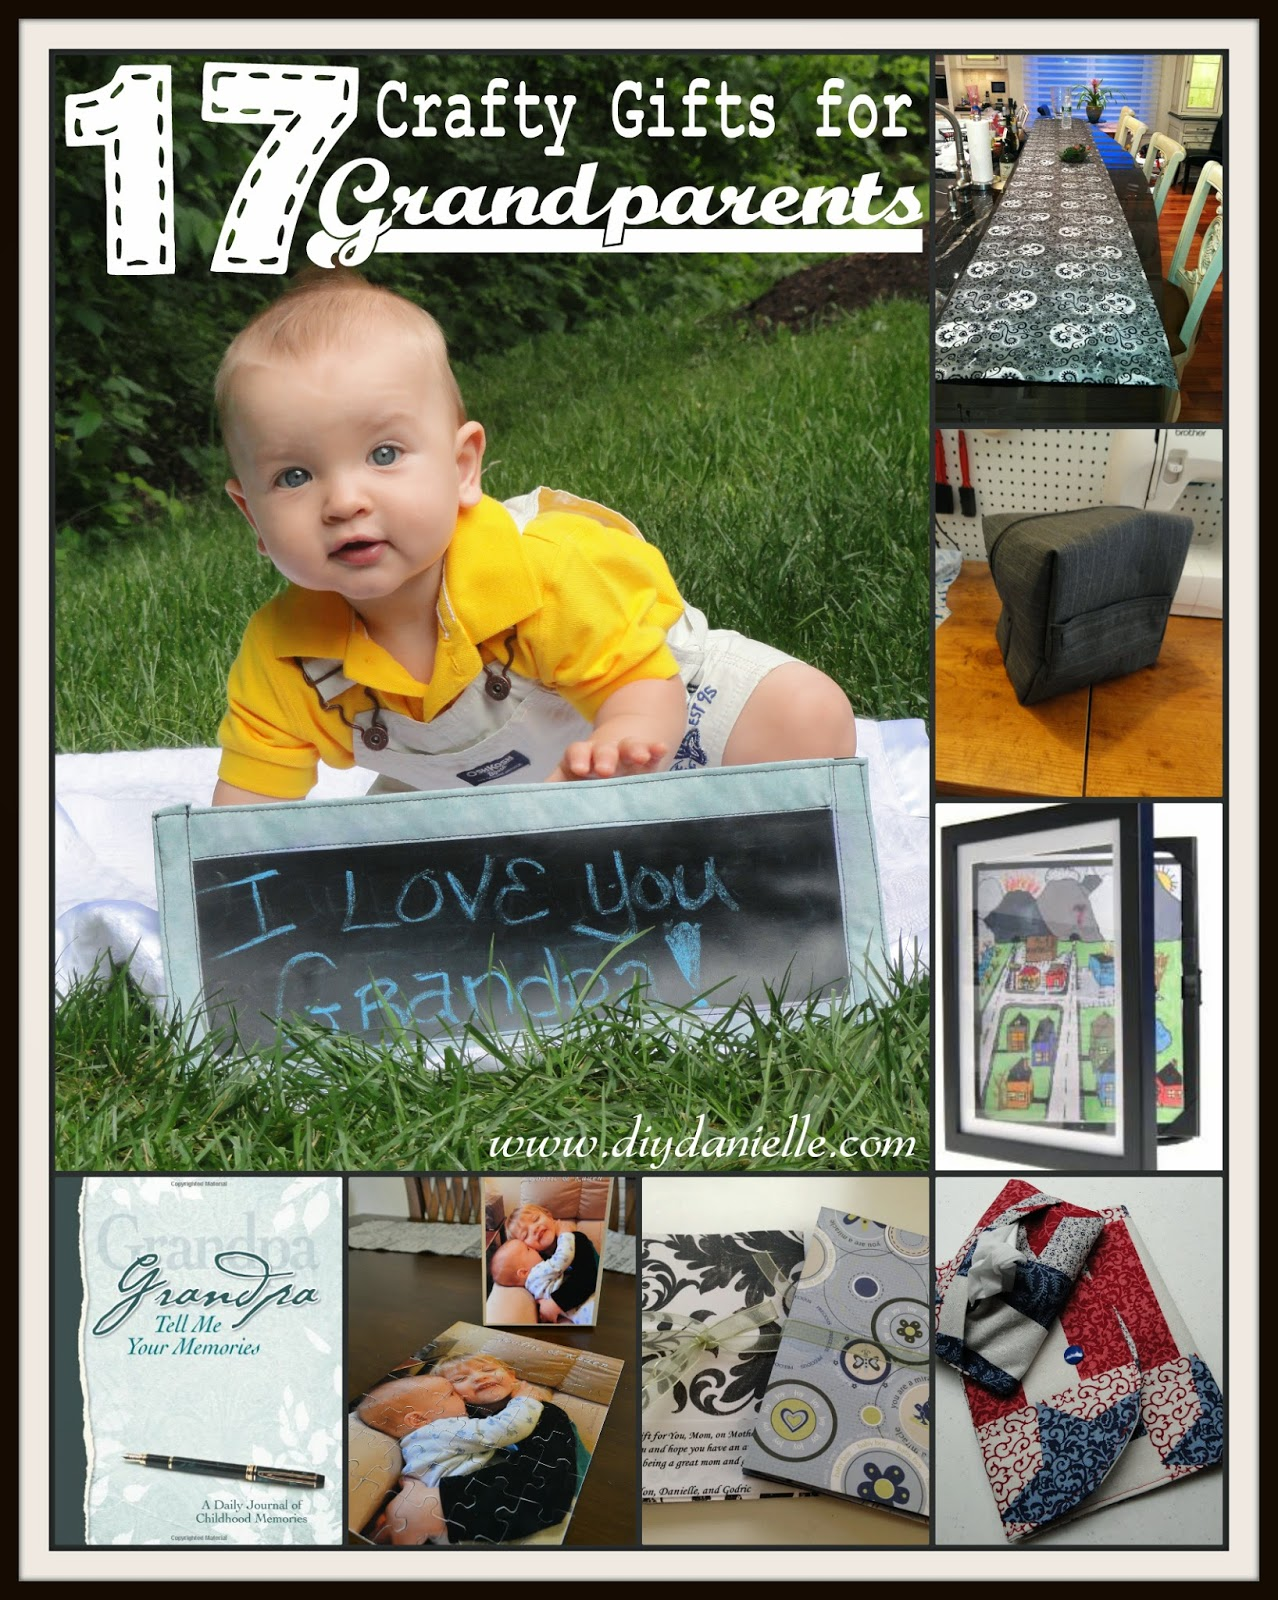 17 Crafty gift ideas for grandparents, moms, dads, and other loved ones.